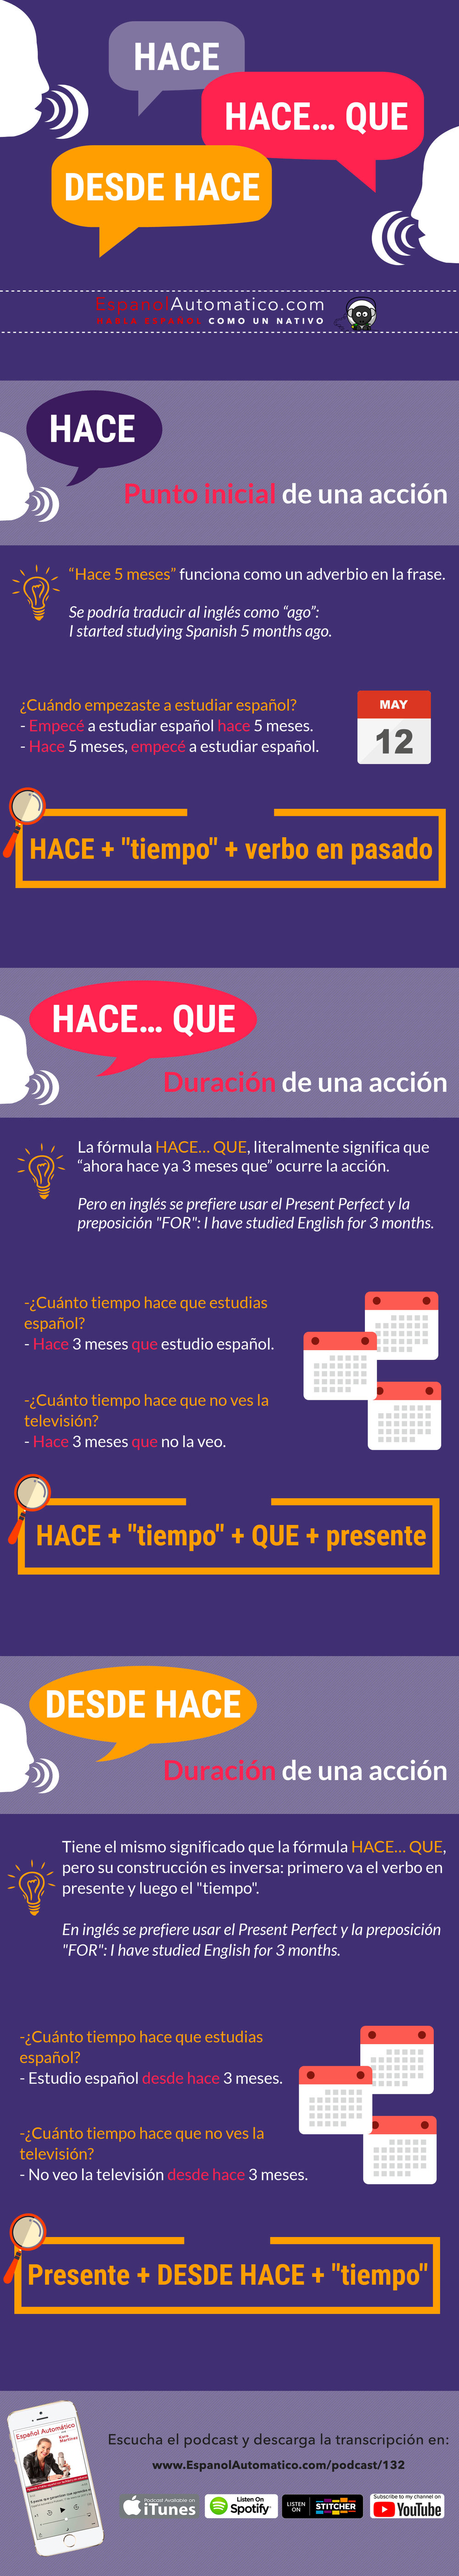 ¿Cuál es la diferencia entre HACE, HACE QUE y DESDE HACE I Gramática española [Podcast 132] Learn Spanish in fun and easy way with our award-winning podcast: http://espanolautomatico.com/podcast/132 REPIN for later #teachspanish #spanishteacher #speakspanish #spanishlessons #learnspanishforadults #learnspanishforadultsfree #learningspanish #learningspanishlanguage